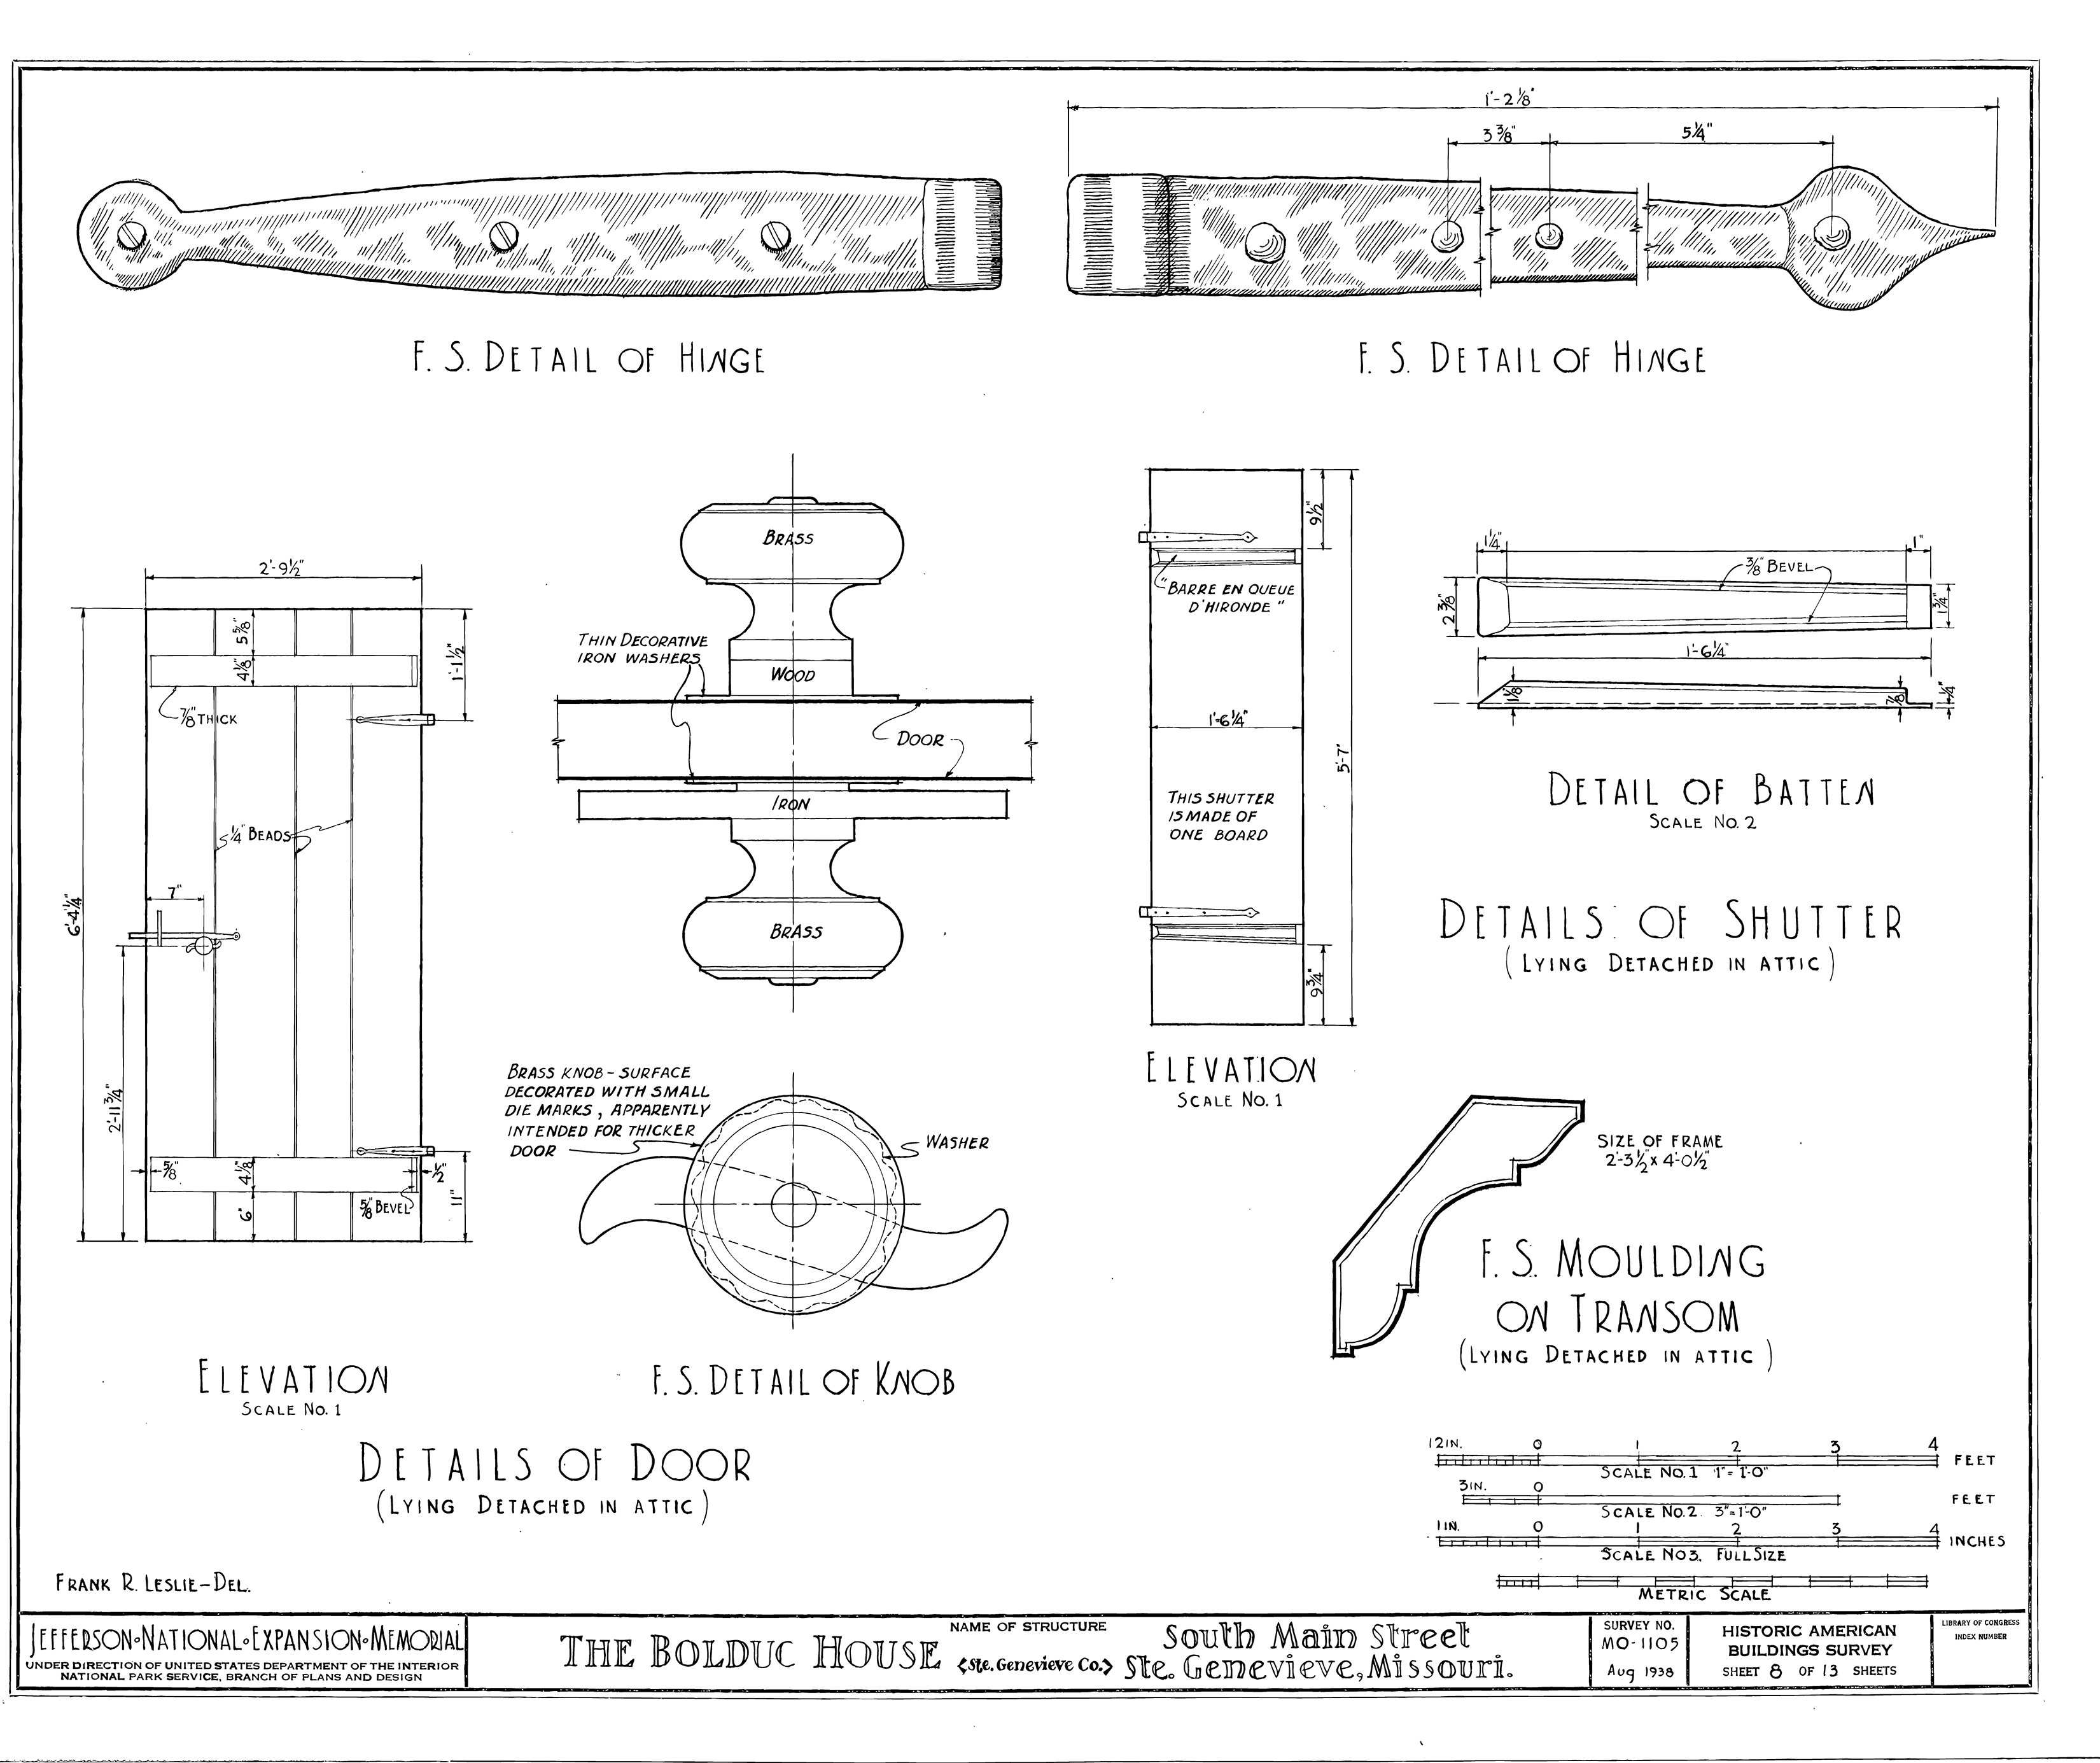 File Drawing Of Door And Shutter Details In The Bolduc